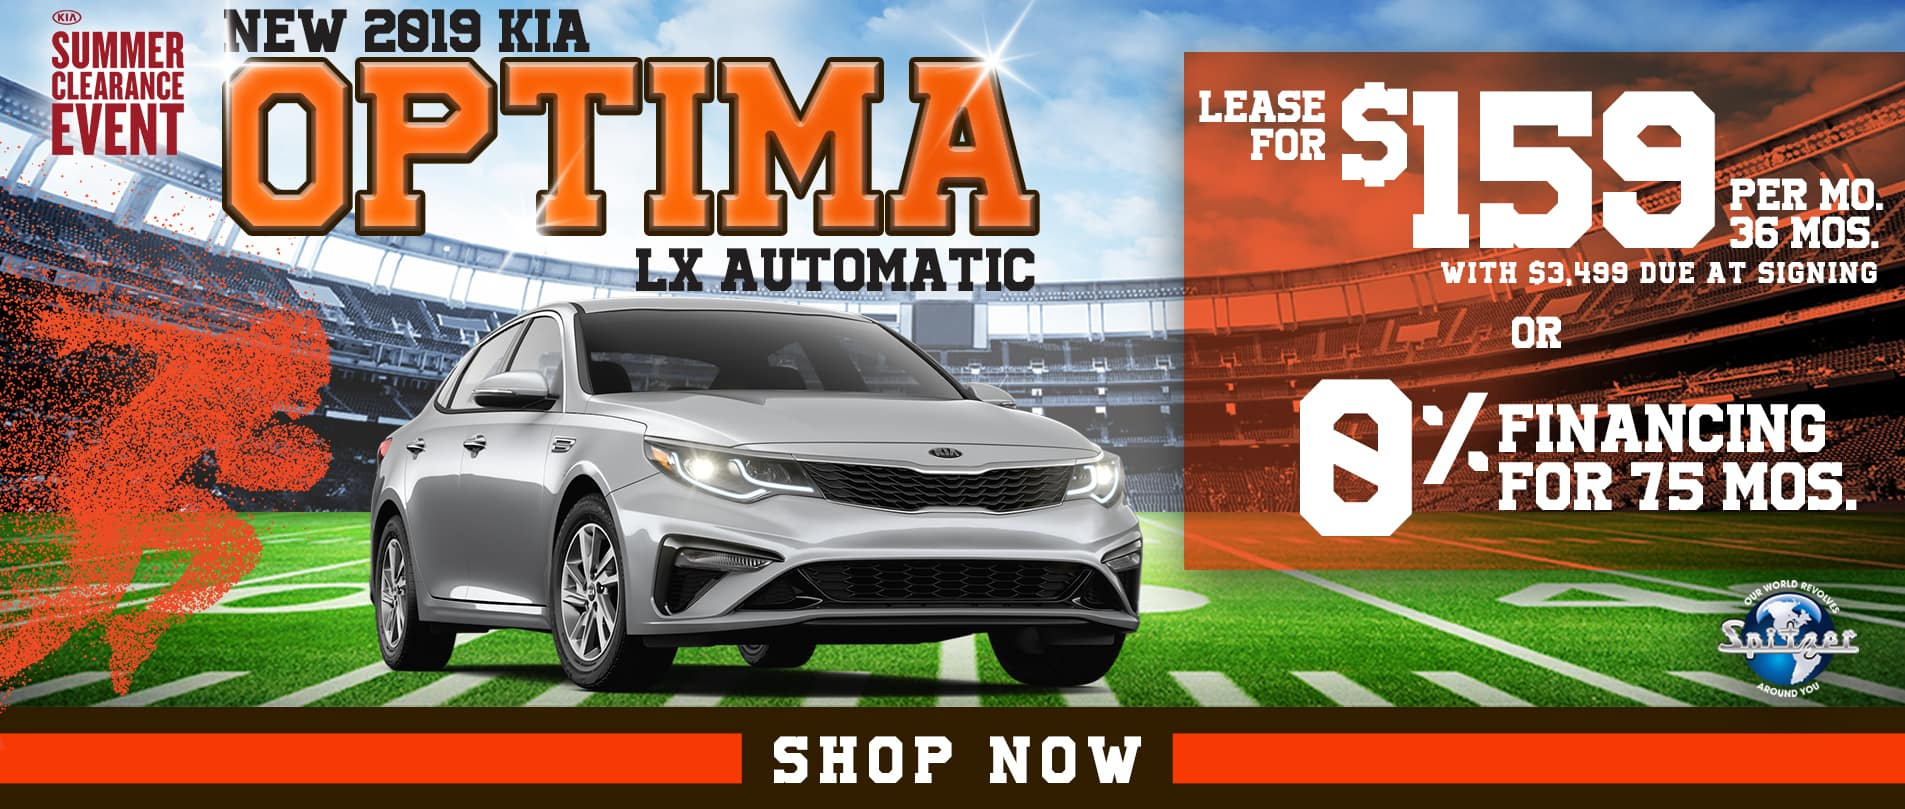 Optima | Lease for $159 per month